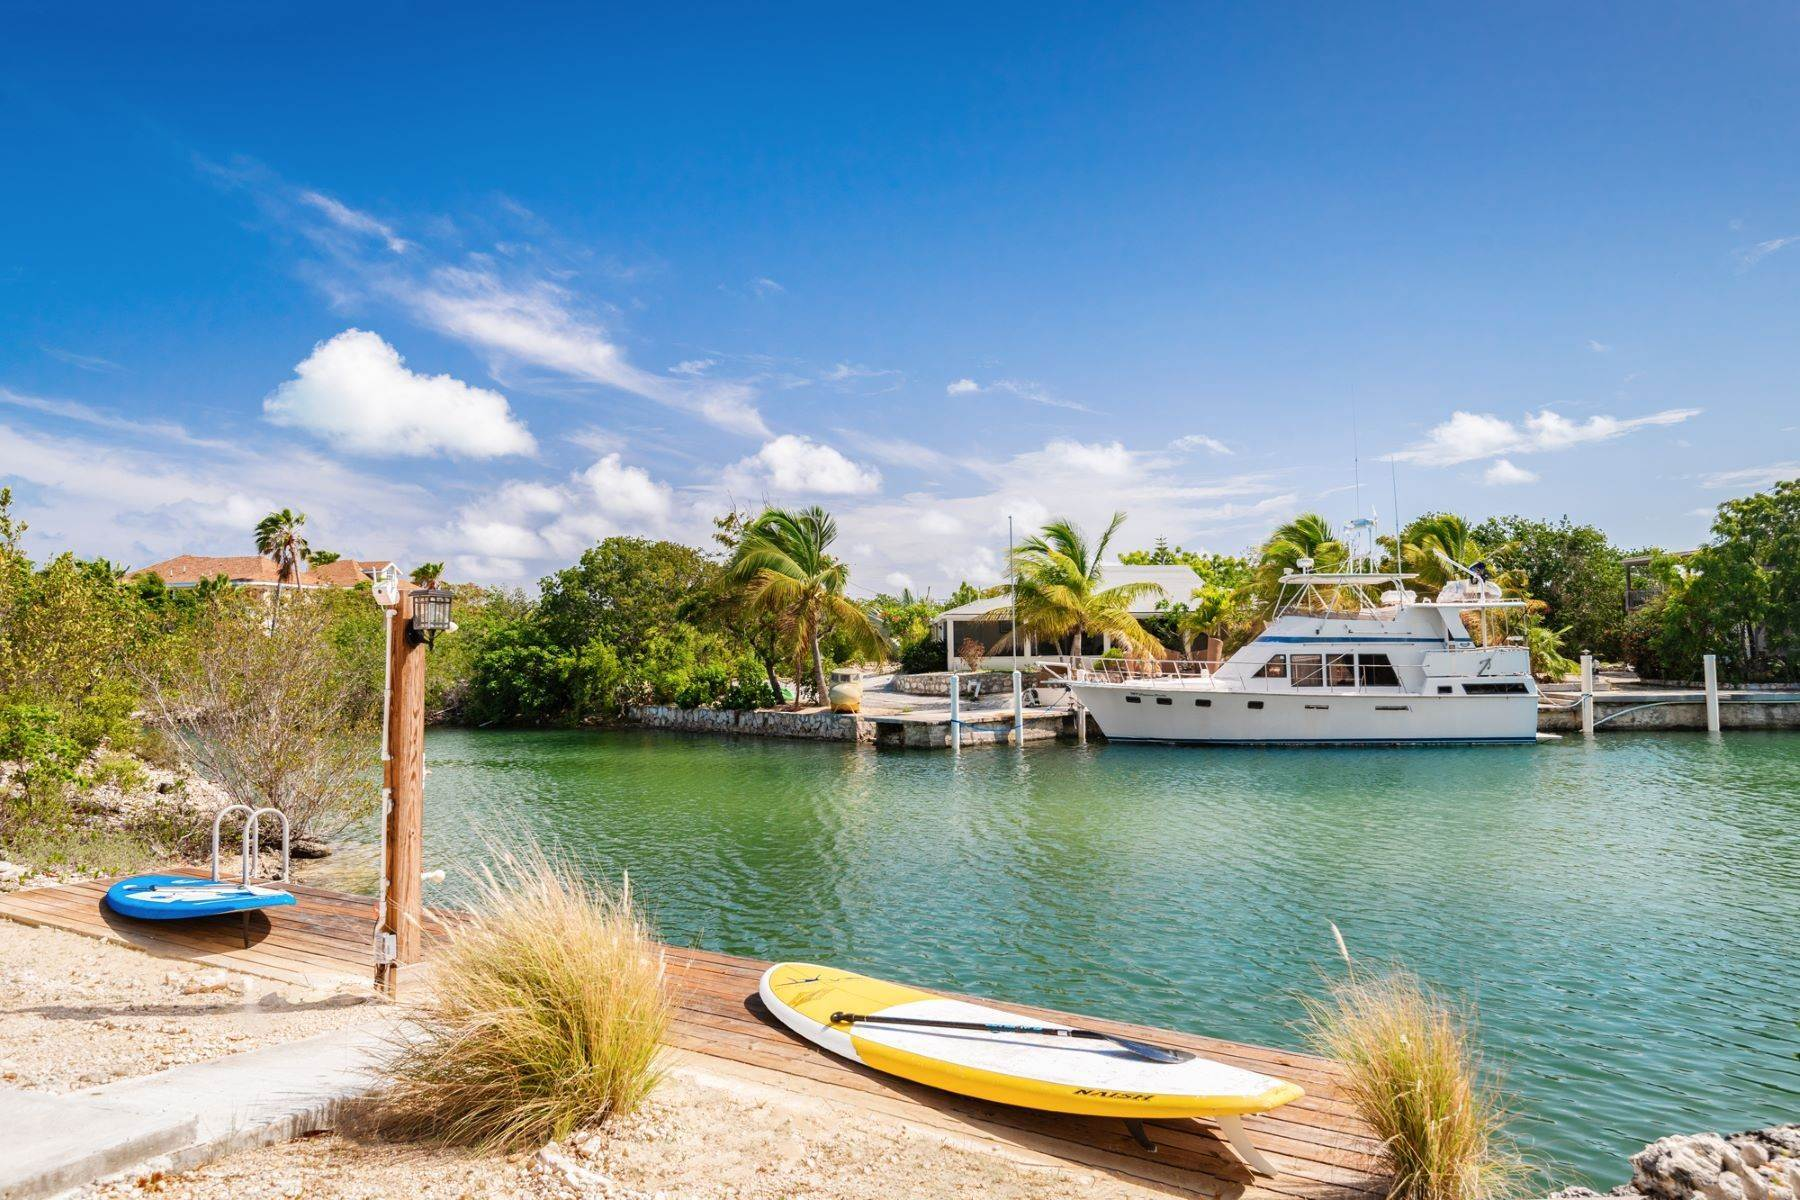 Single Family Homes for Sale at Palm Breeze Villa Discovery Bay, Providenciales Turks And Caicos Islands